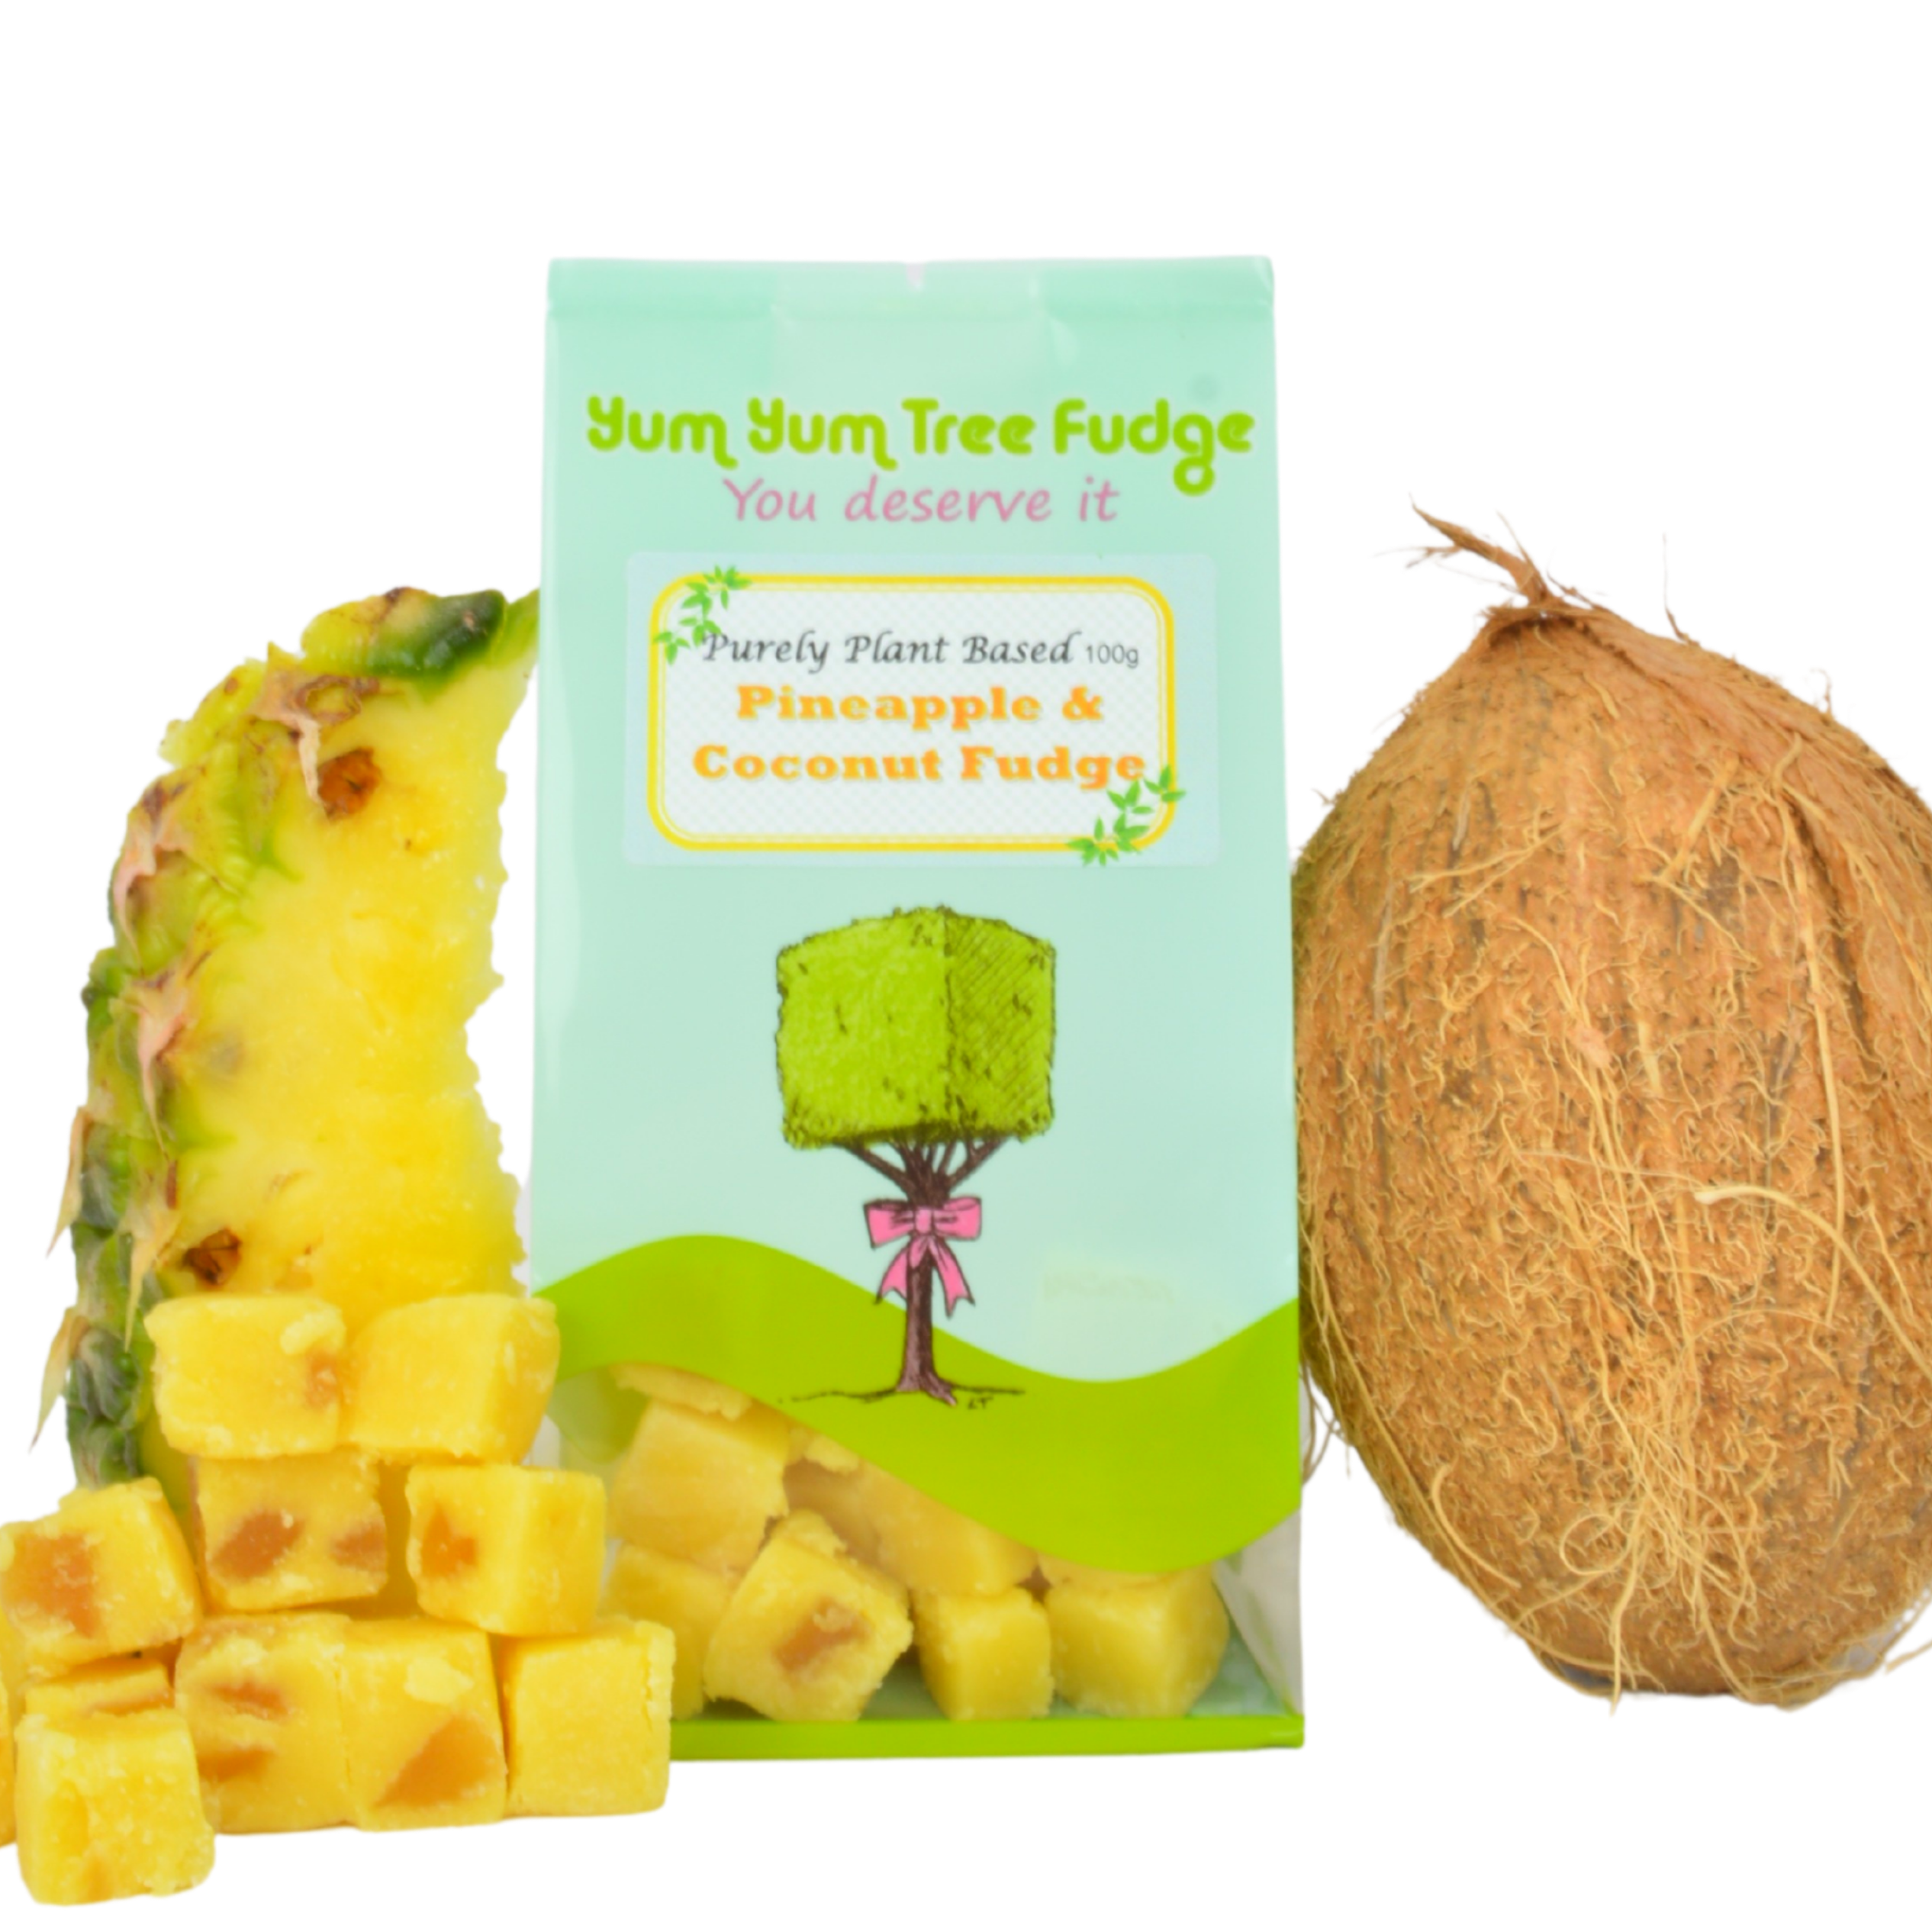 Plant Based Pineapple & Coconut Fudge by Yum Yum Tree Fudge